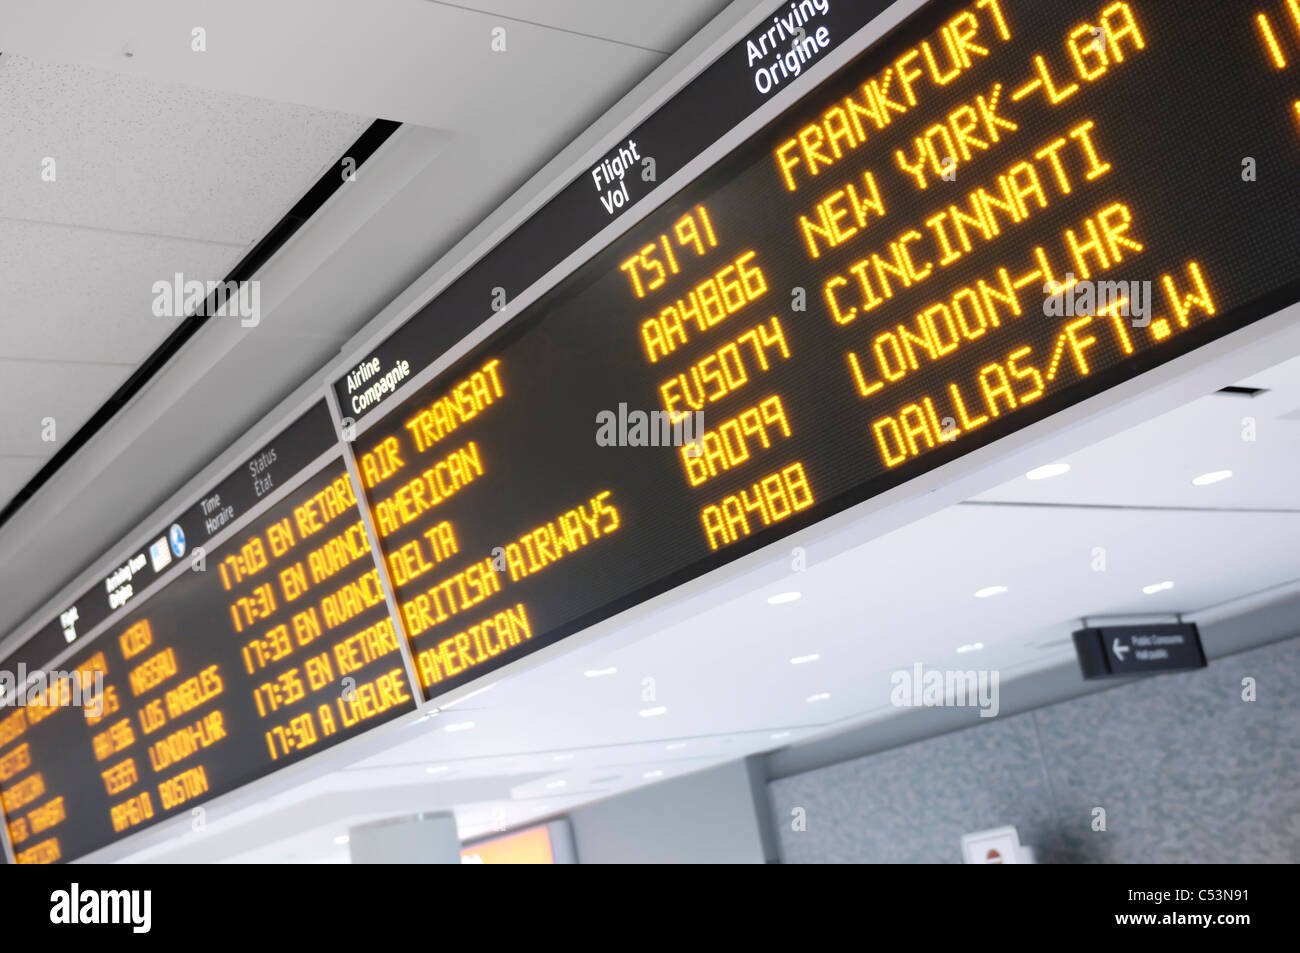 Toronto Pearson International airport arrivals board - Stock Image